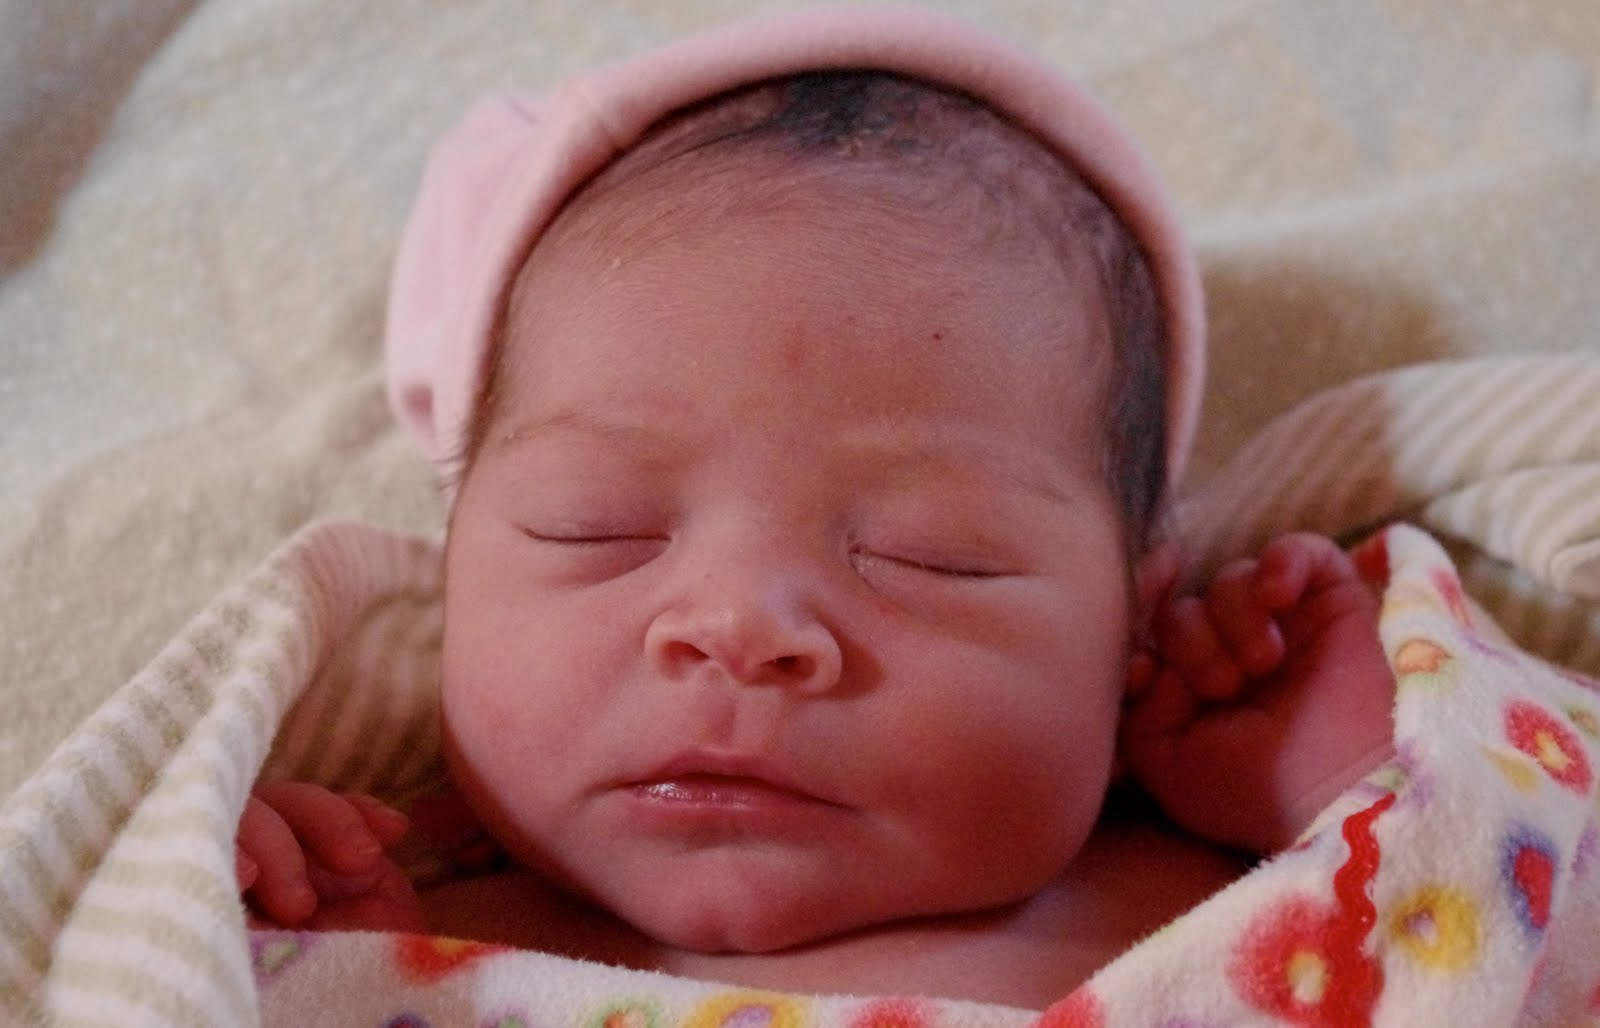 Newborn mexican babies to a baby girl newborn mexican babies in hospital